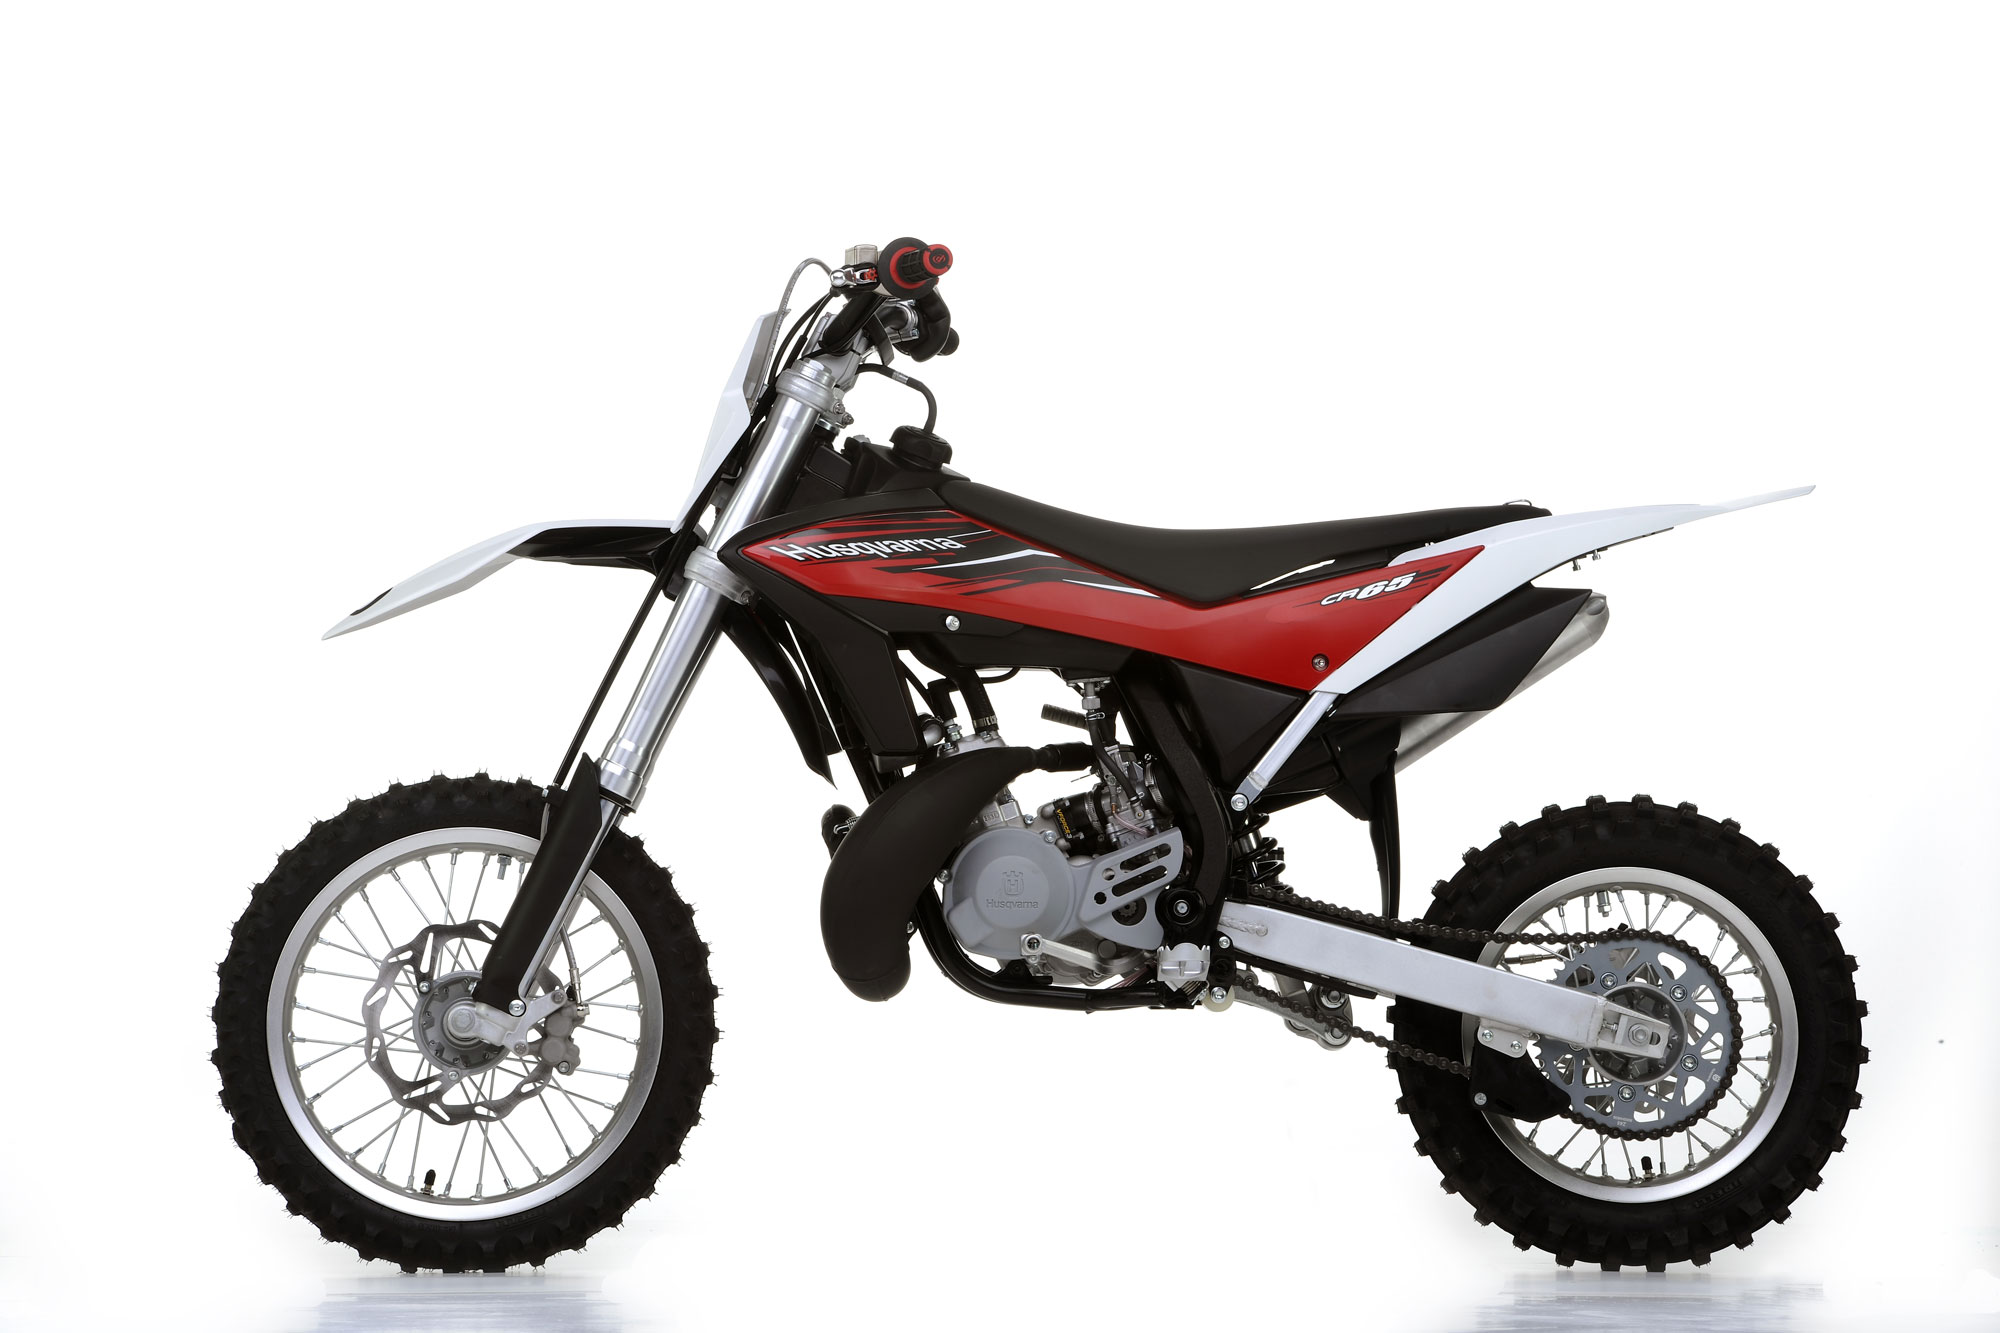 Husqvarna cr photo - 7